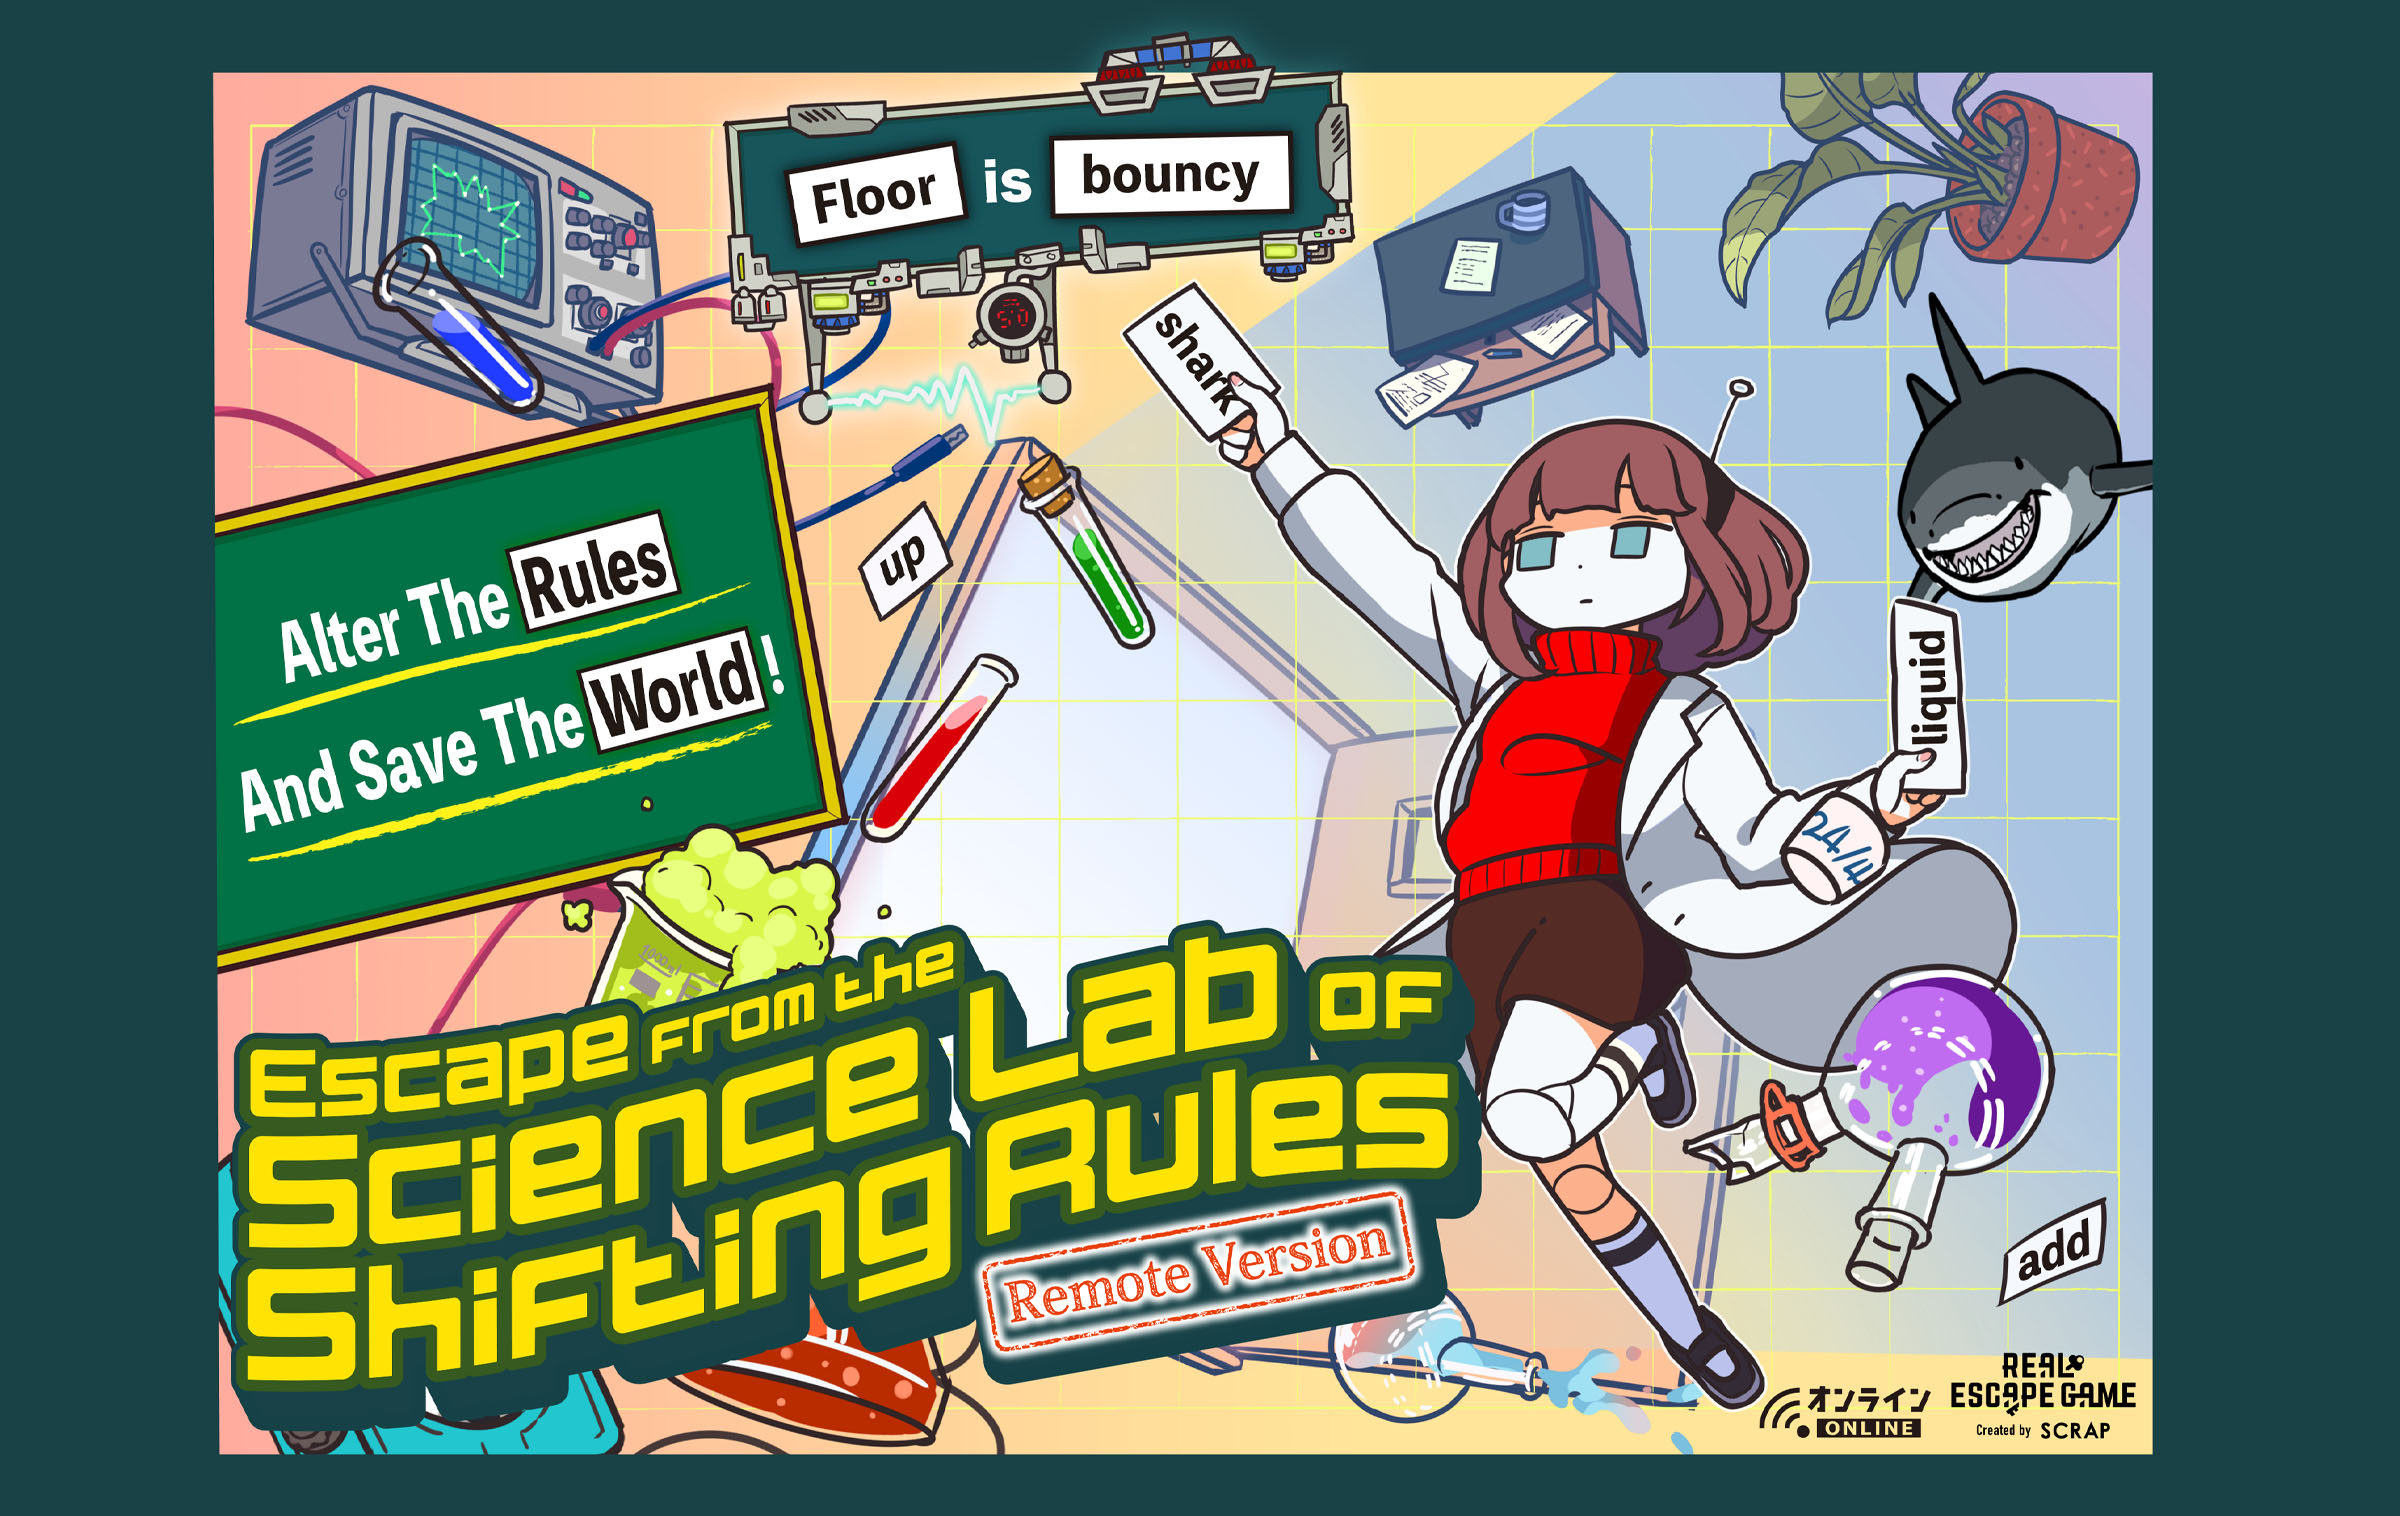 Escape from the Science Lab of shifting rules